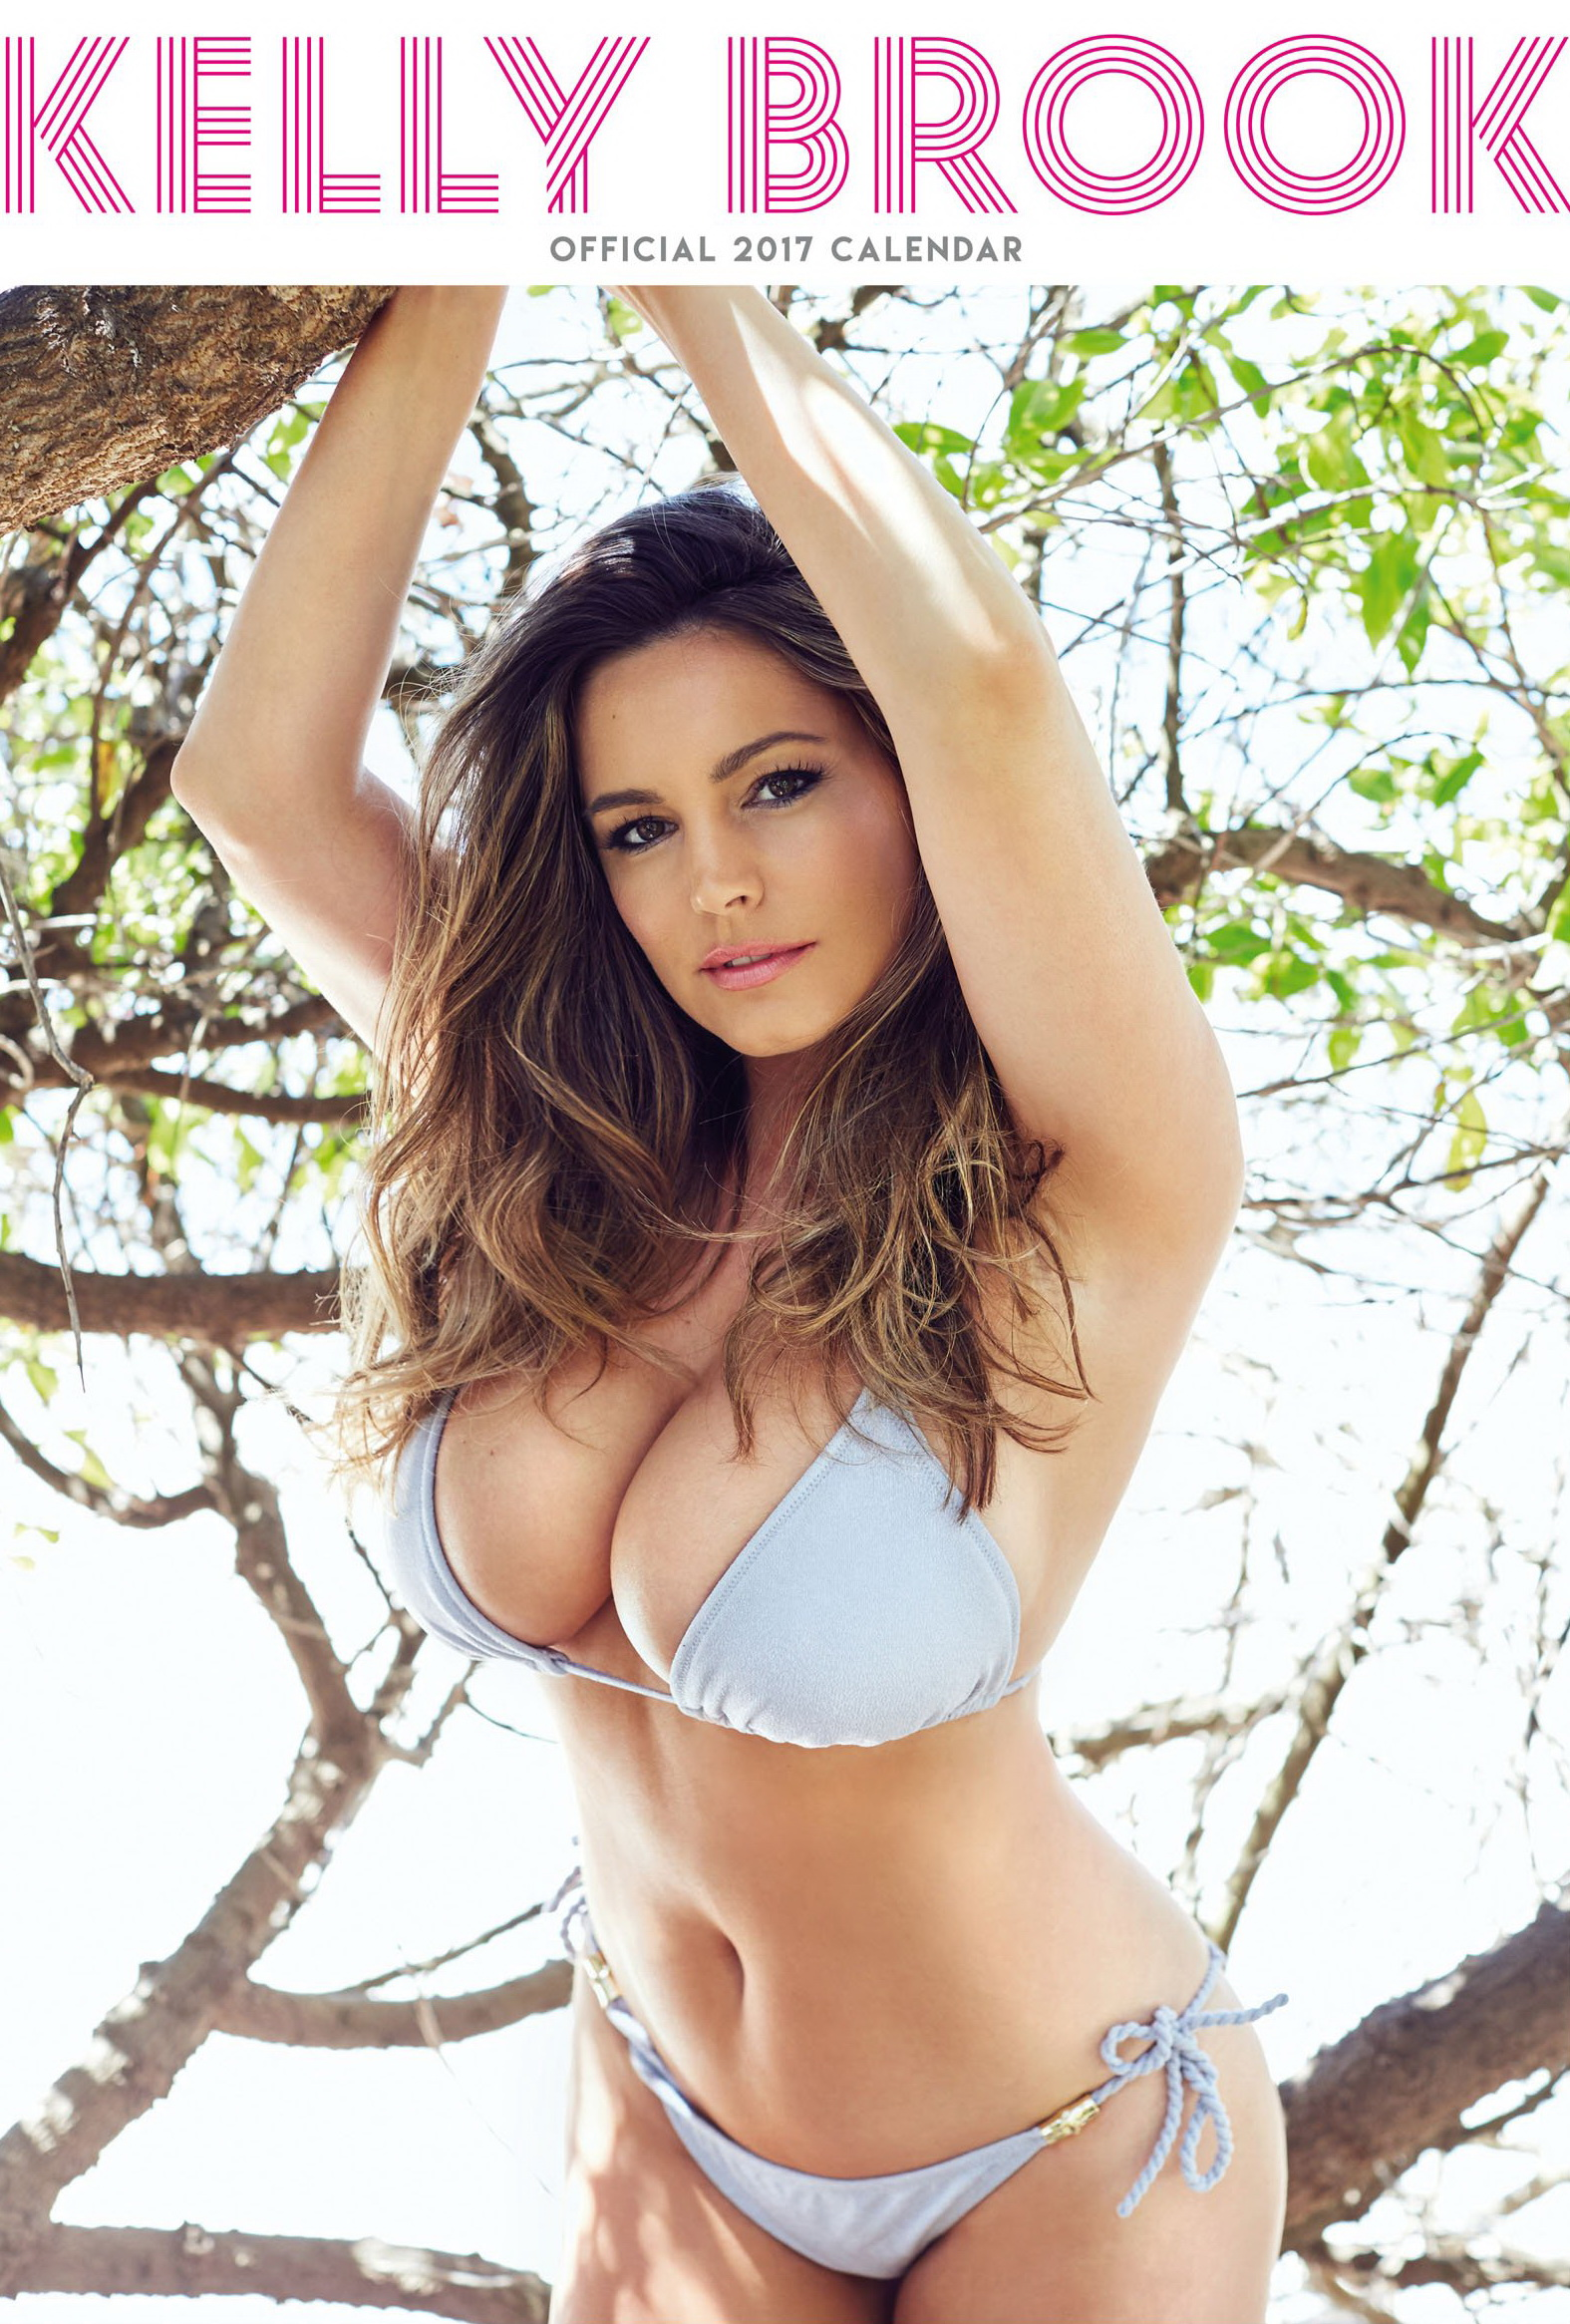 You inquisitive Kelly brook gallery